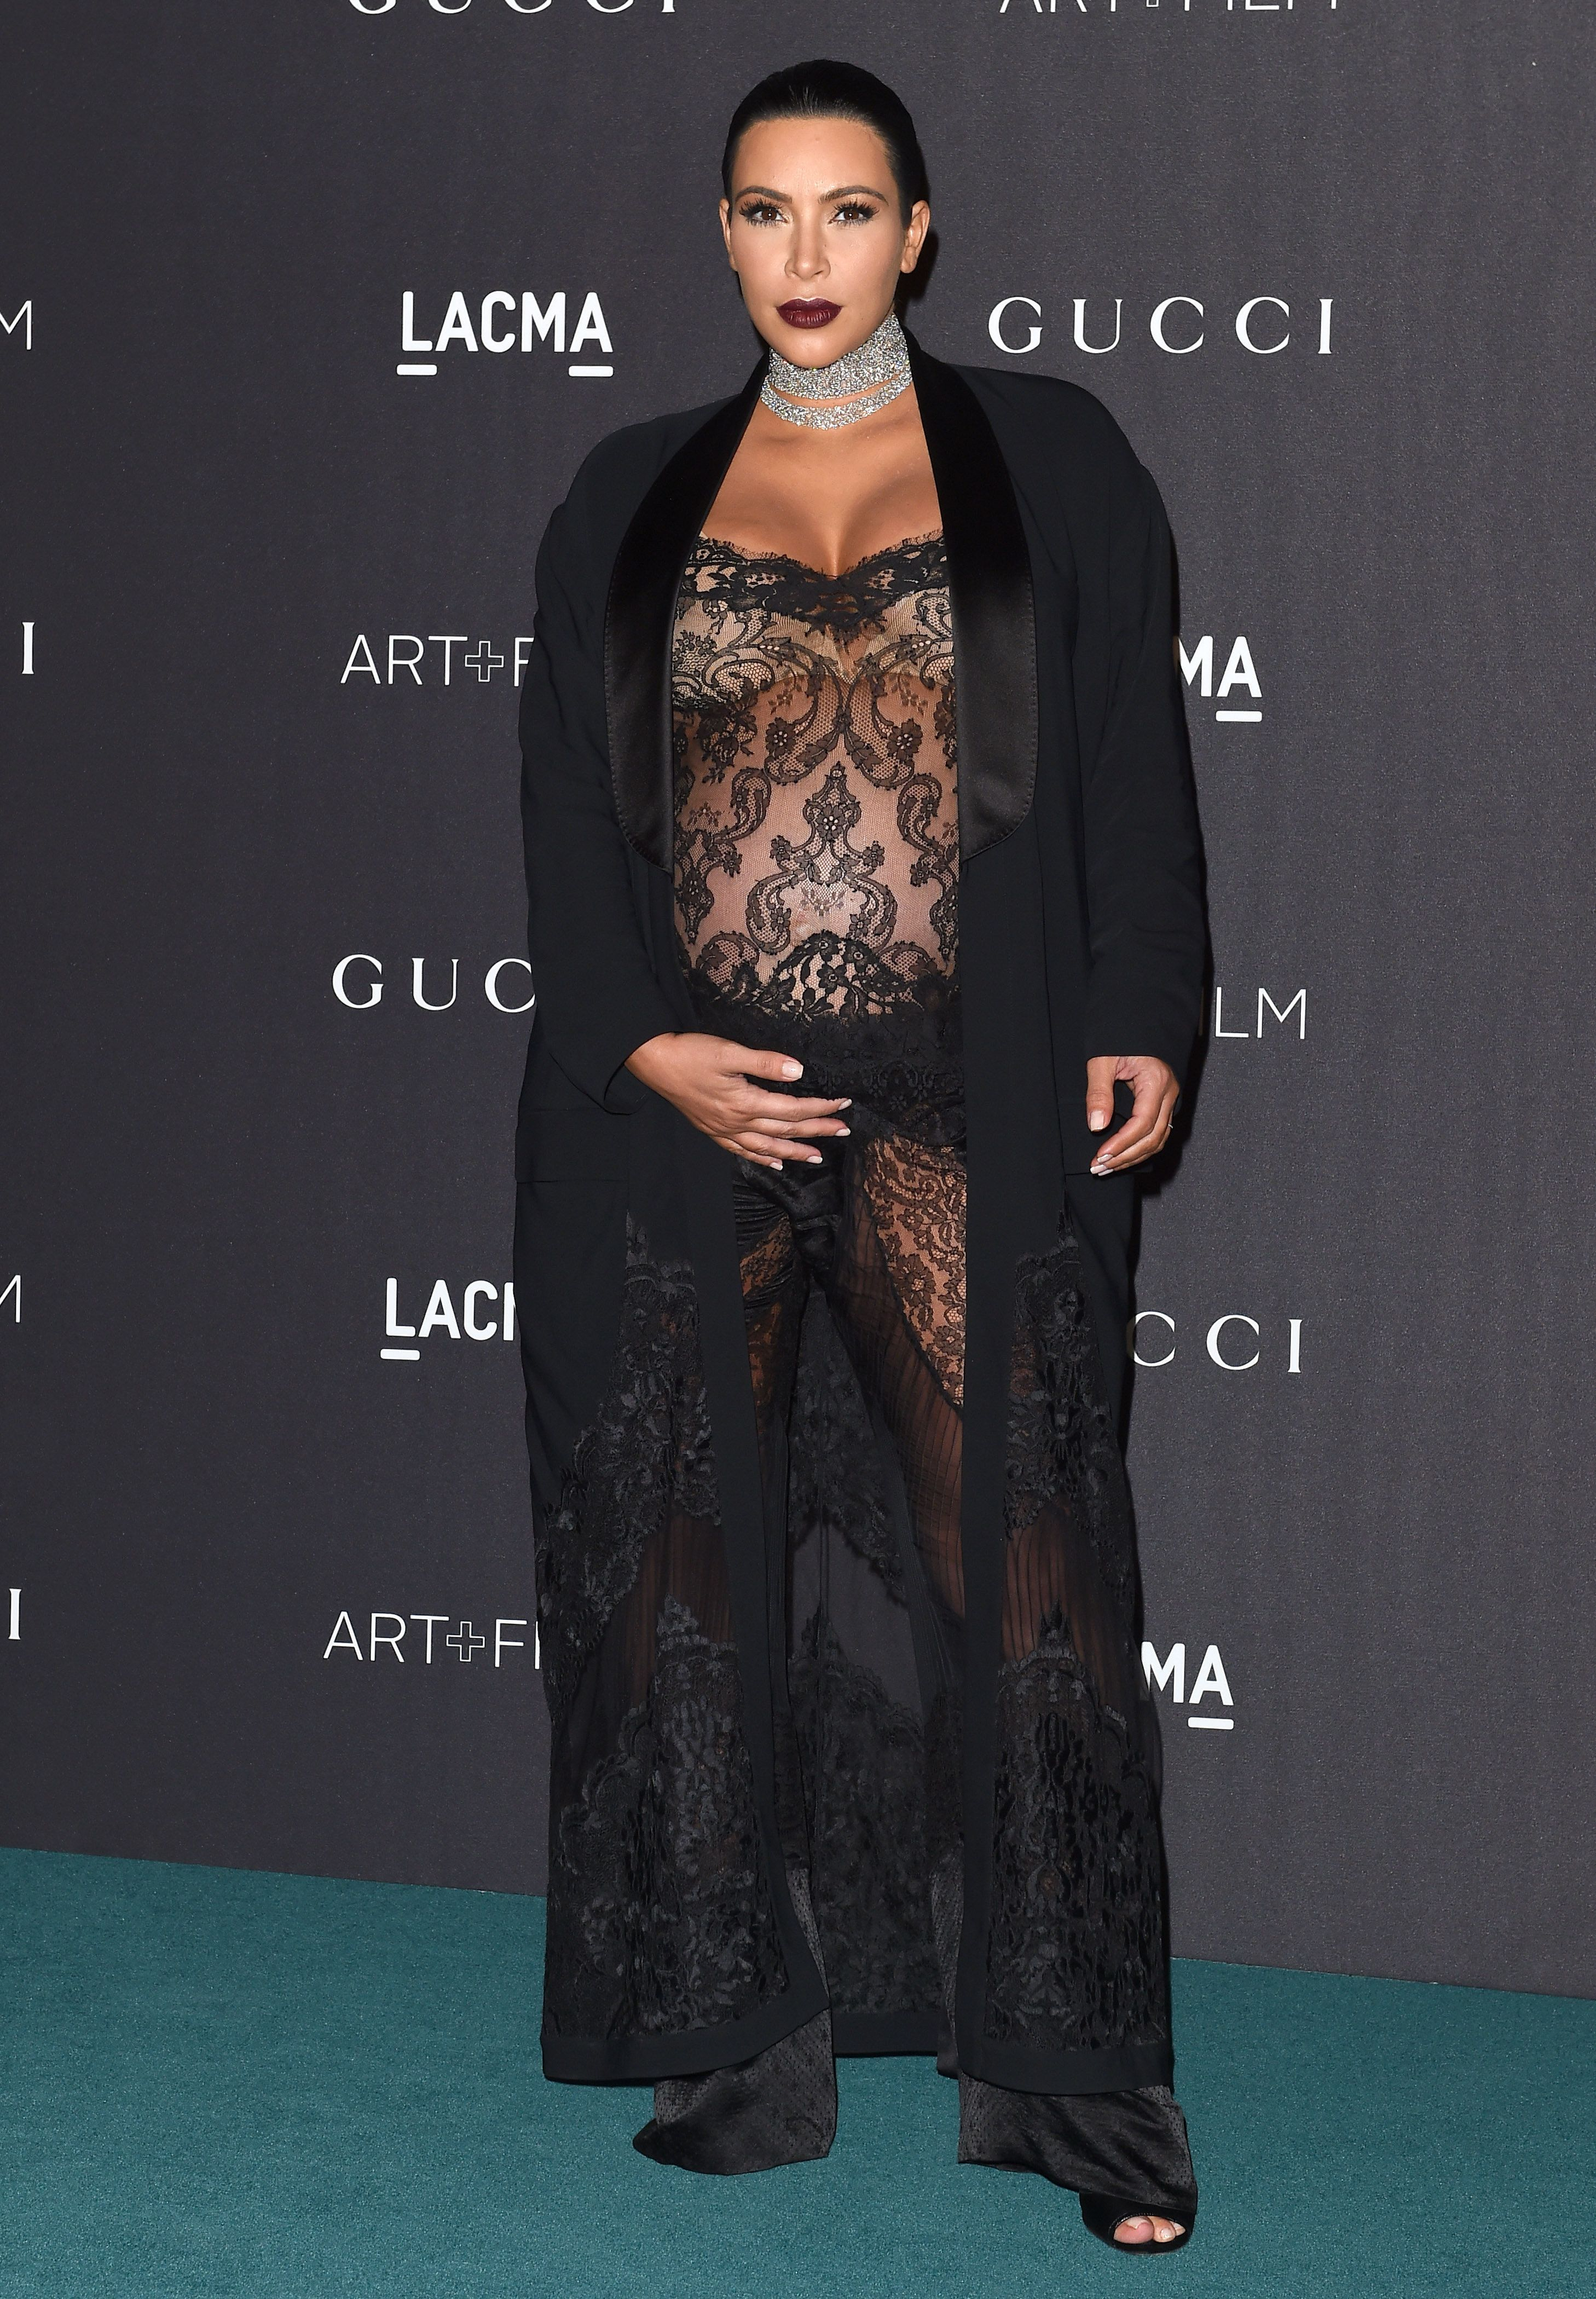 LOS ANGELES, CA - NOVEMBER 07:  TV personality Kim Kardashian West arrives at the LACMA 2015 Art+Film Gala Honoring James Turrell And Alejandro G Inarritu, Presented By Gucci at LACMA on November 7, 2015 in Los Angeles, California.  (Photo by Axelle/Bauer-Griffin/FilmMagic)